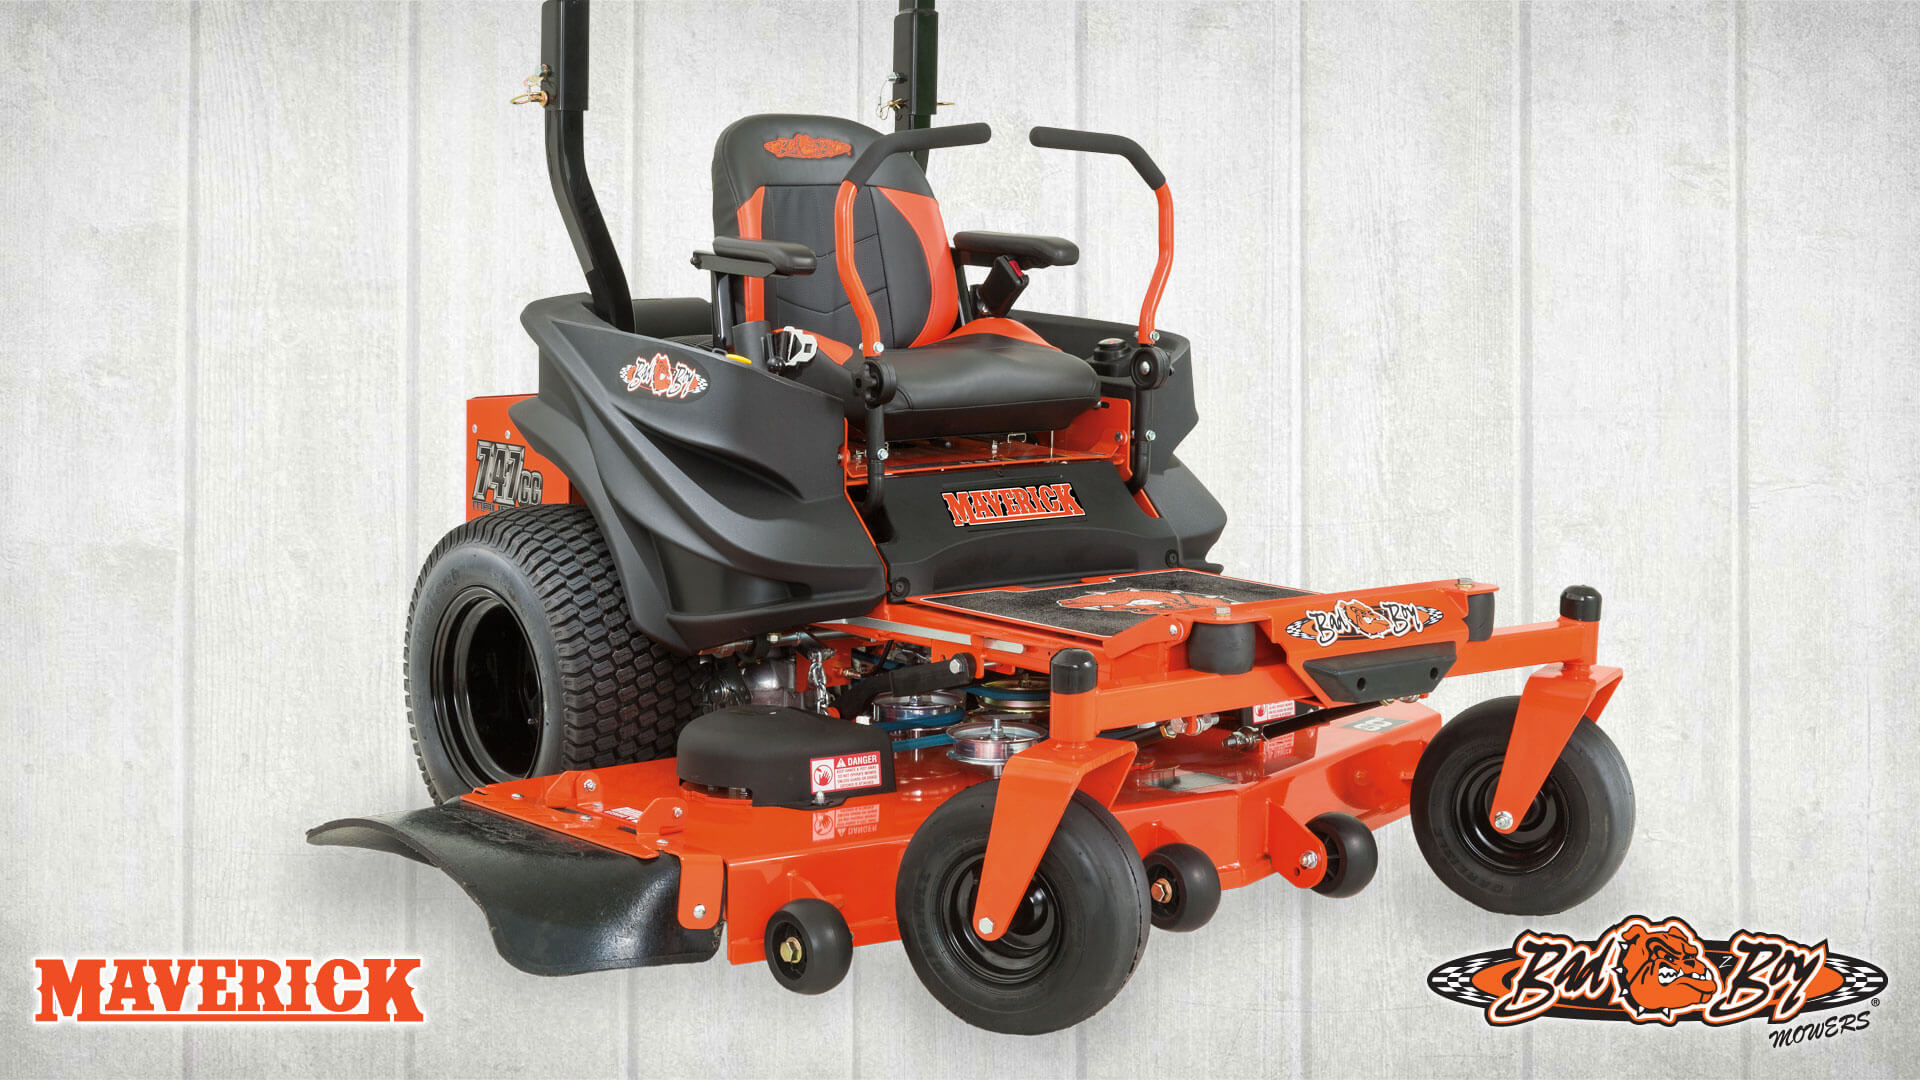 Bad Boy Mowers continues to buck the industry by building the strongest, most powerful mowers — for the best value — packed with innovation not found on any other mower in their class.